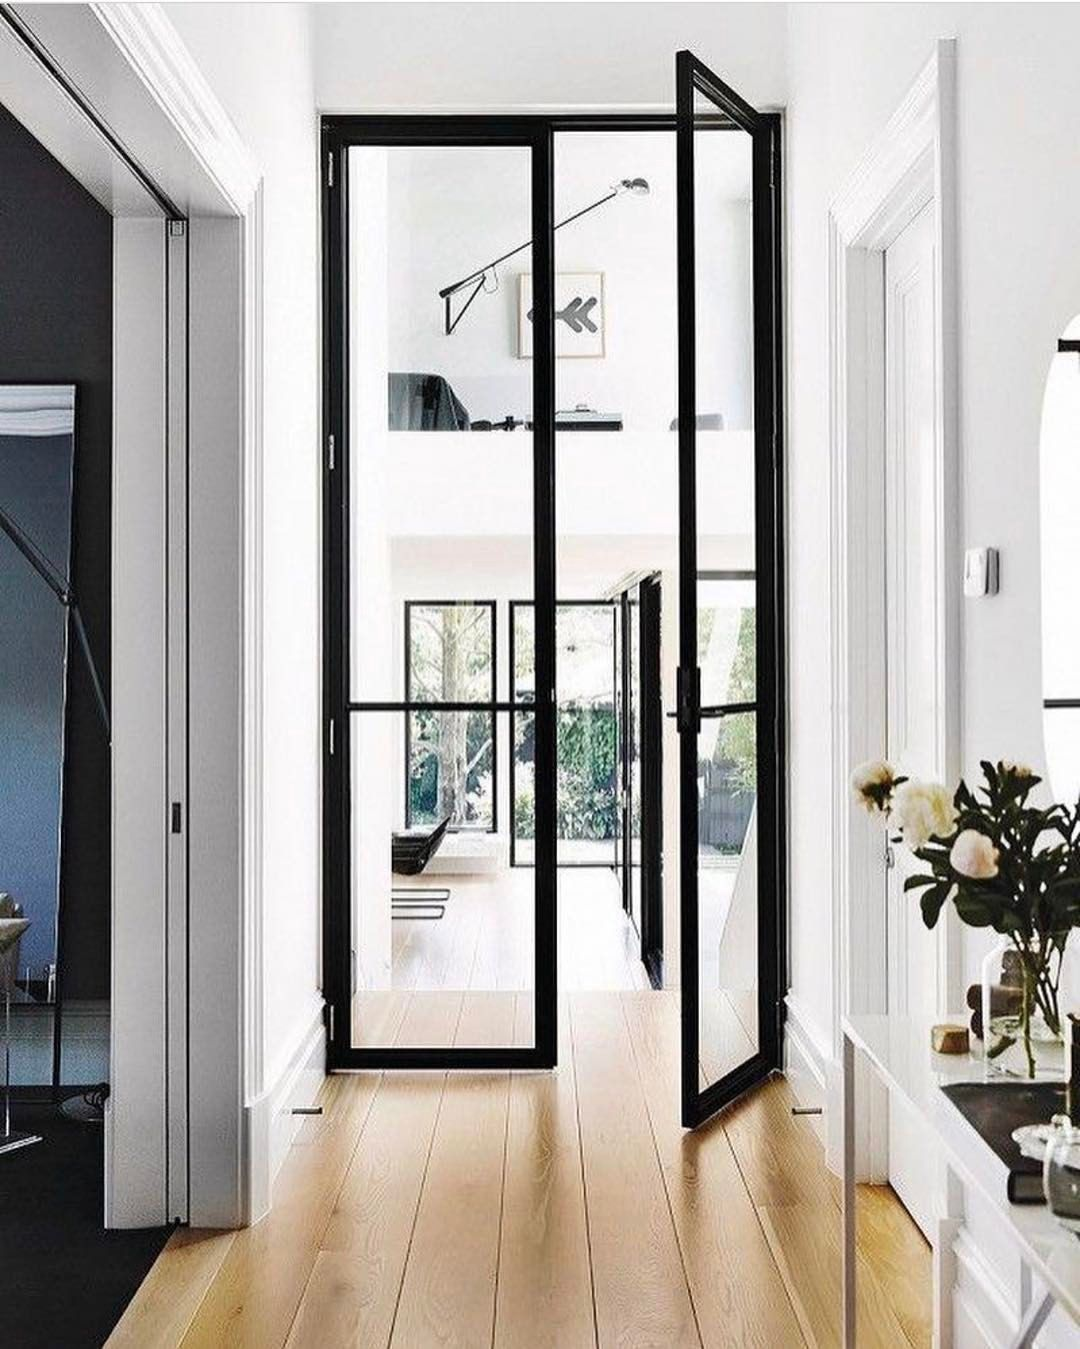 House design with sliding window   likes  comments  dotpop interiors  eve gunson